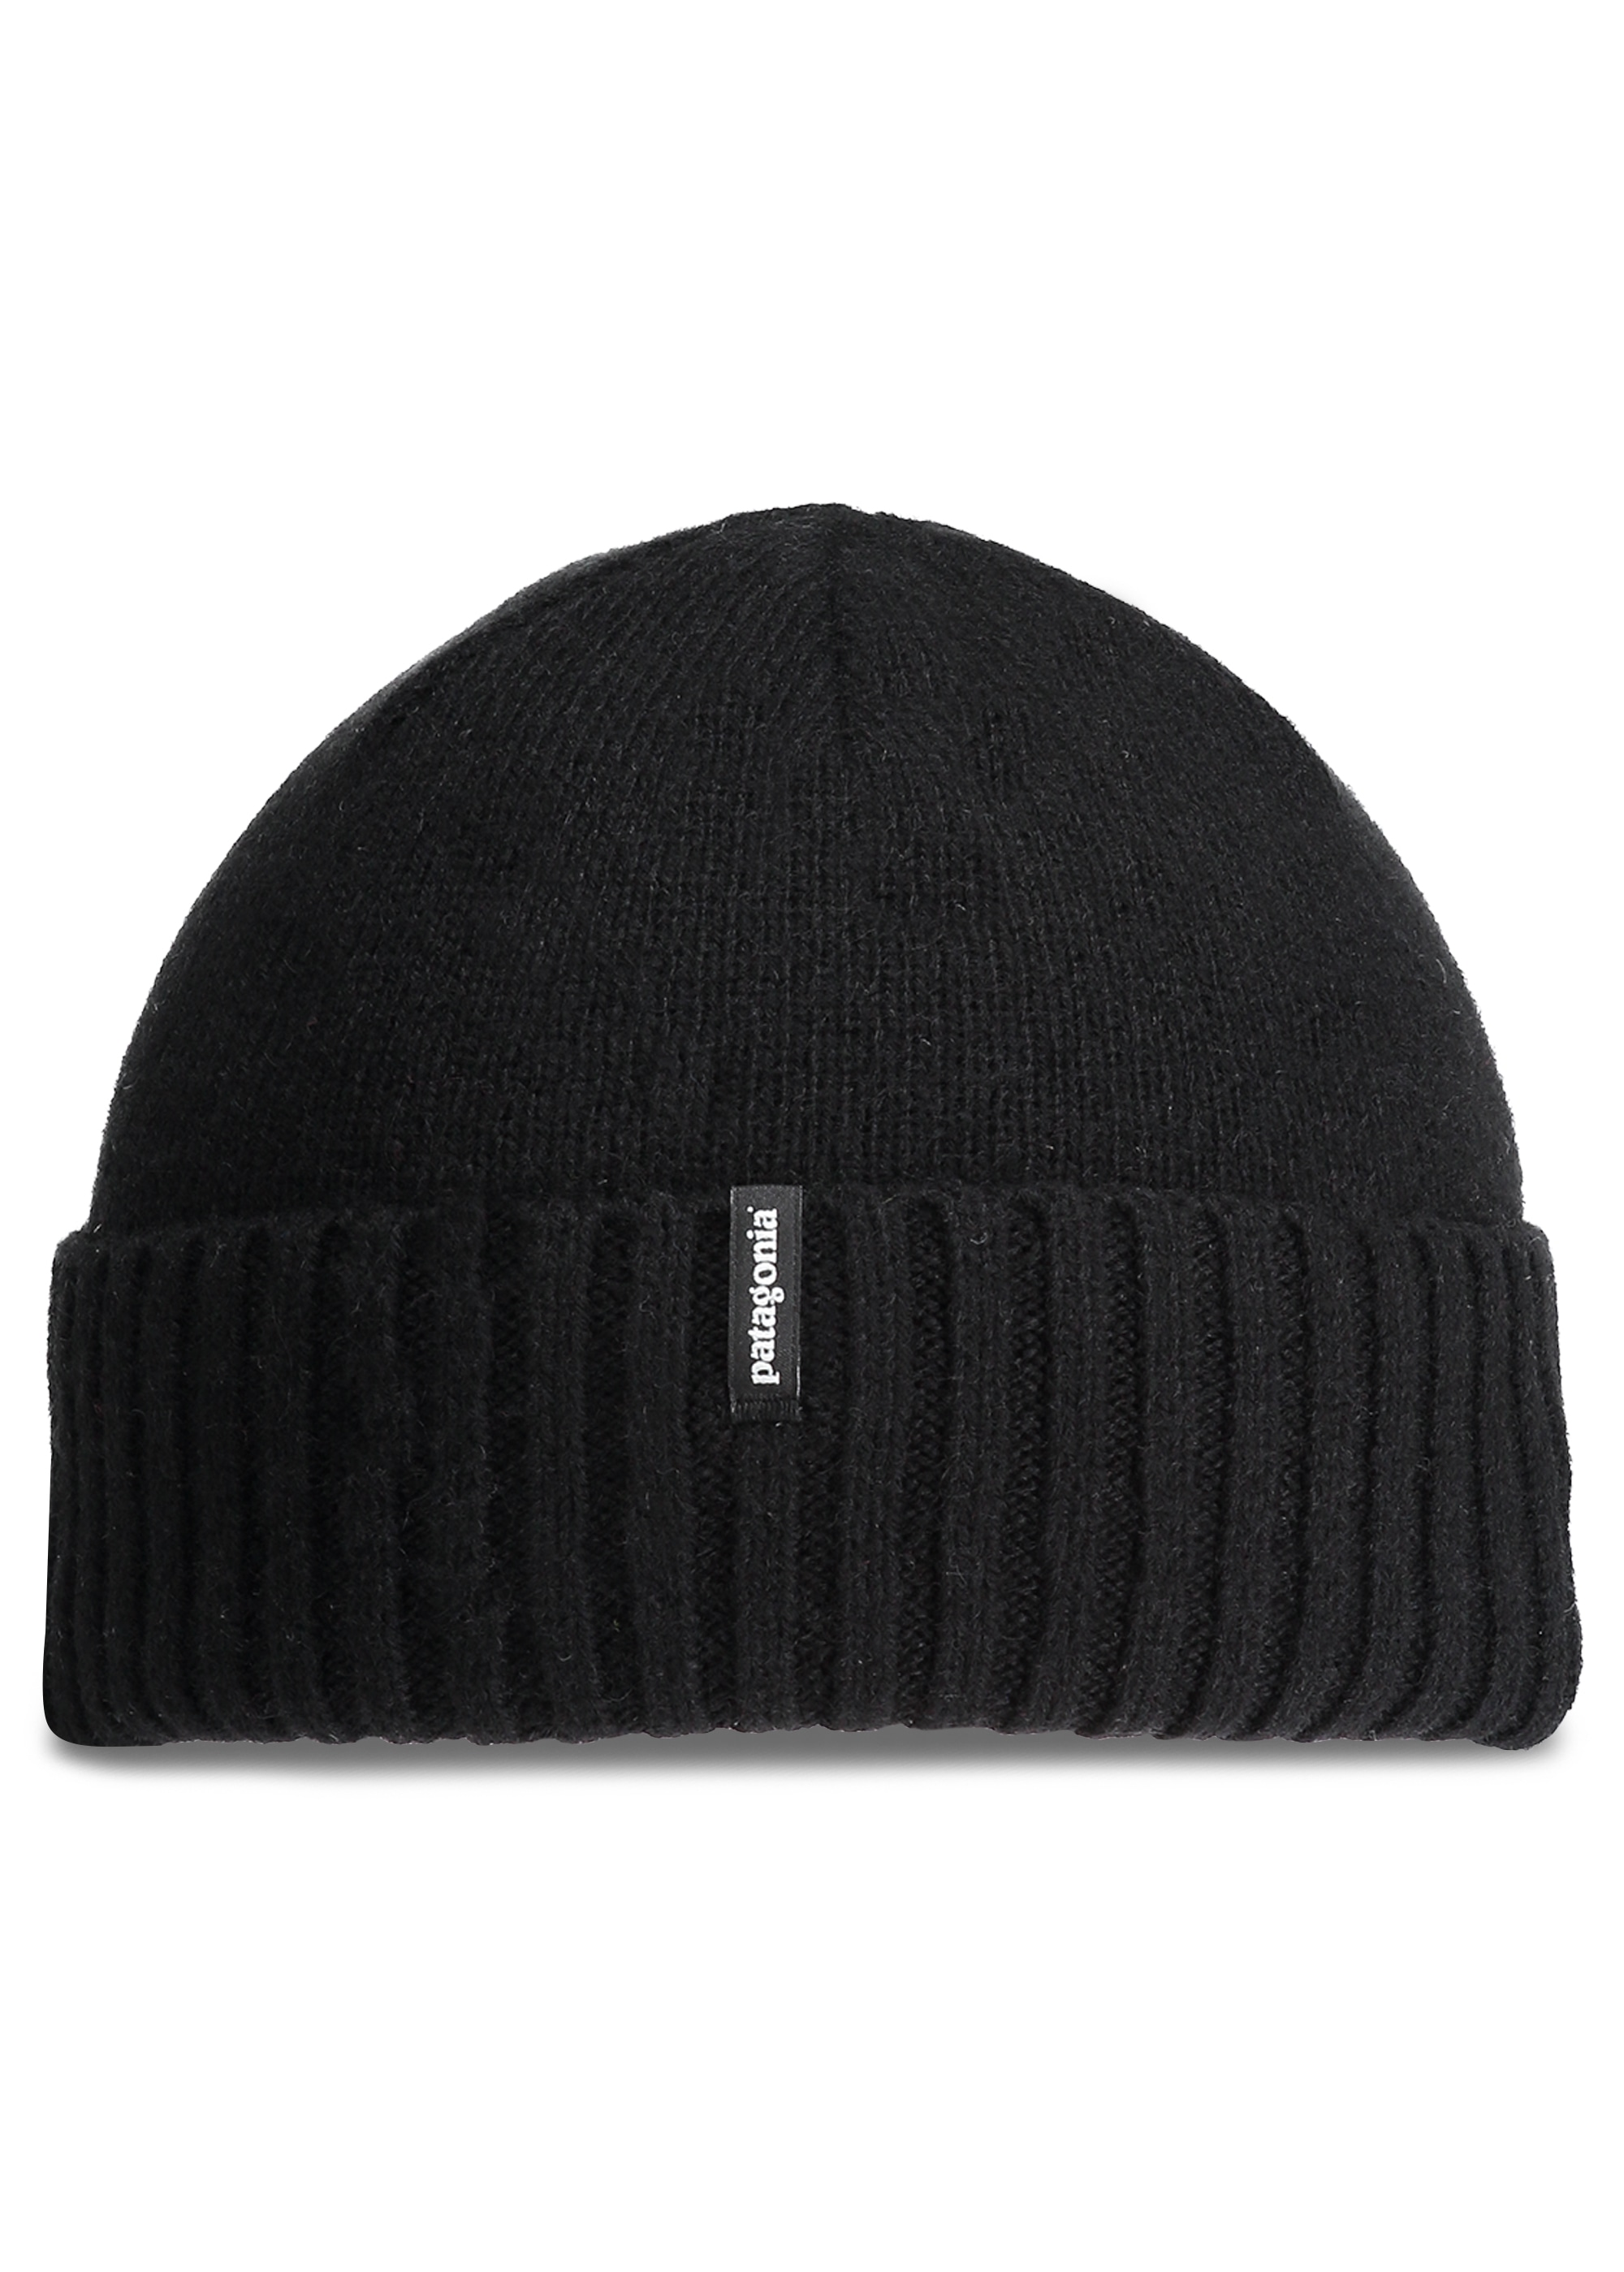 Patagonia Brodeo Beanie - Black - Headwear from Triads UK d7c6768f5a32